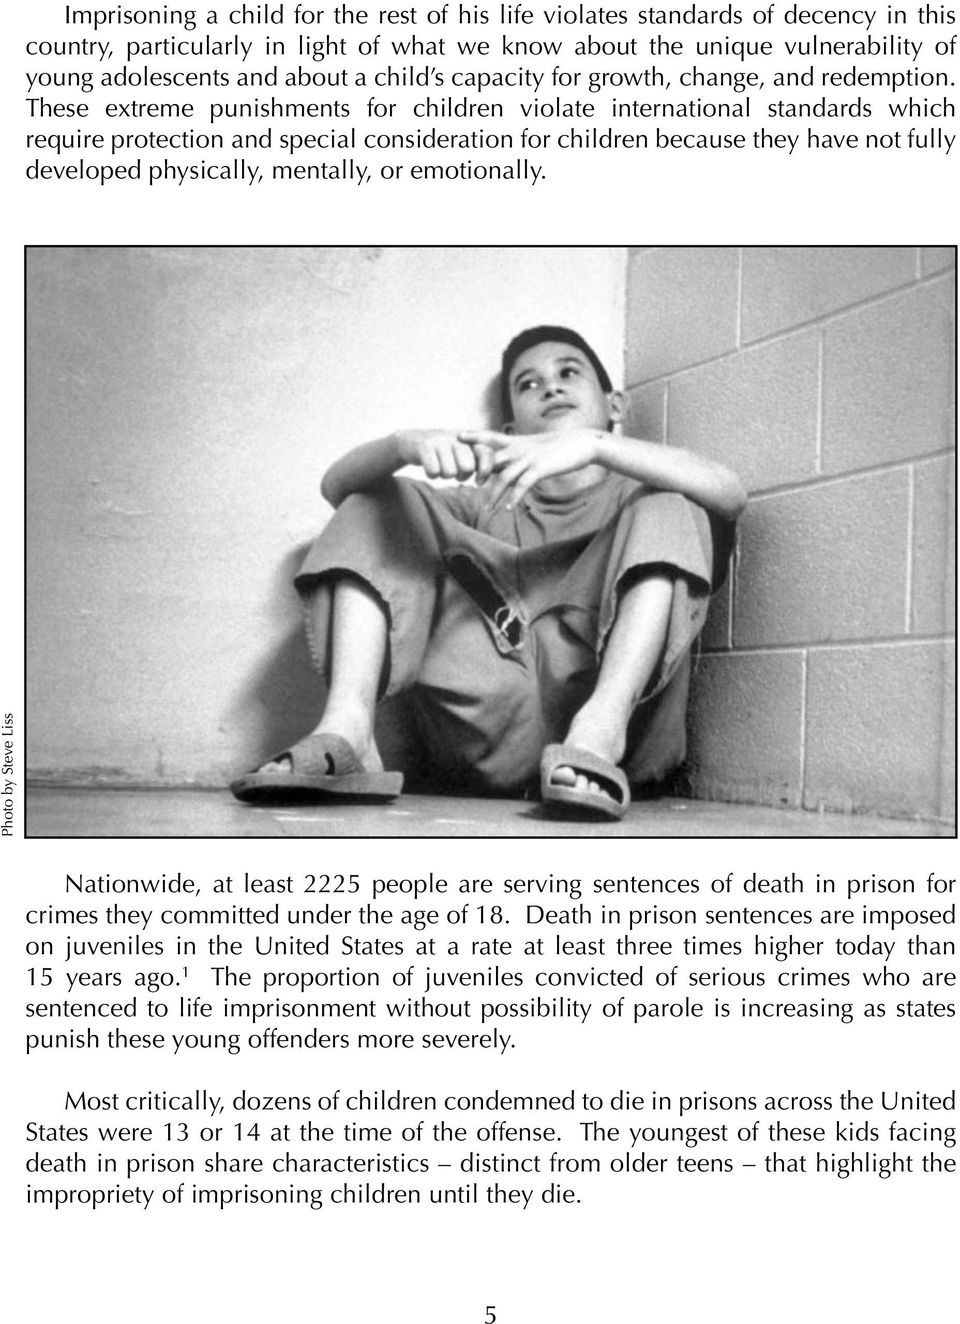 These extreme punishments for children violate international standards which require protection and special consideration for children because they have not fully developed physically, mentally, or